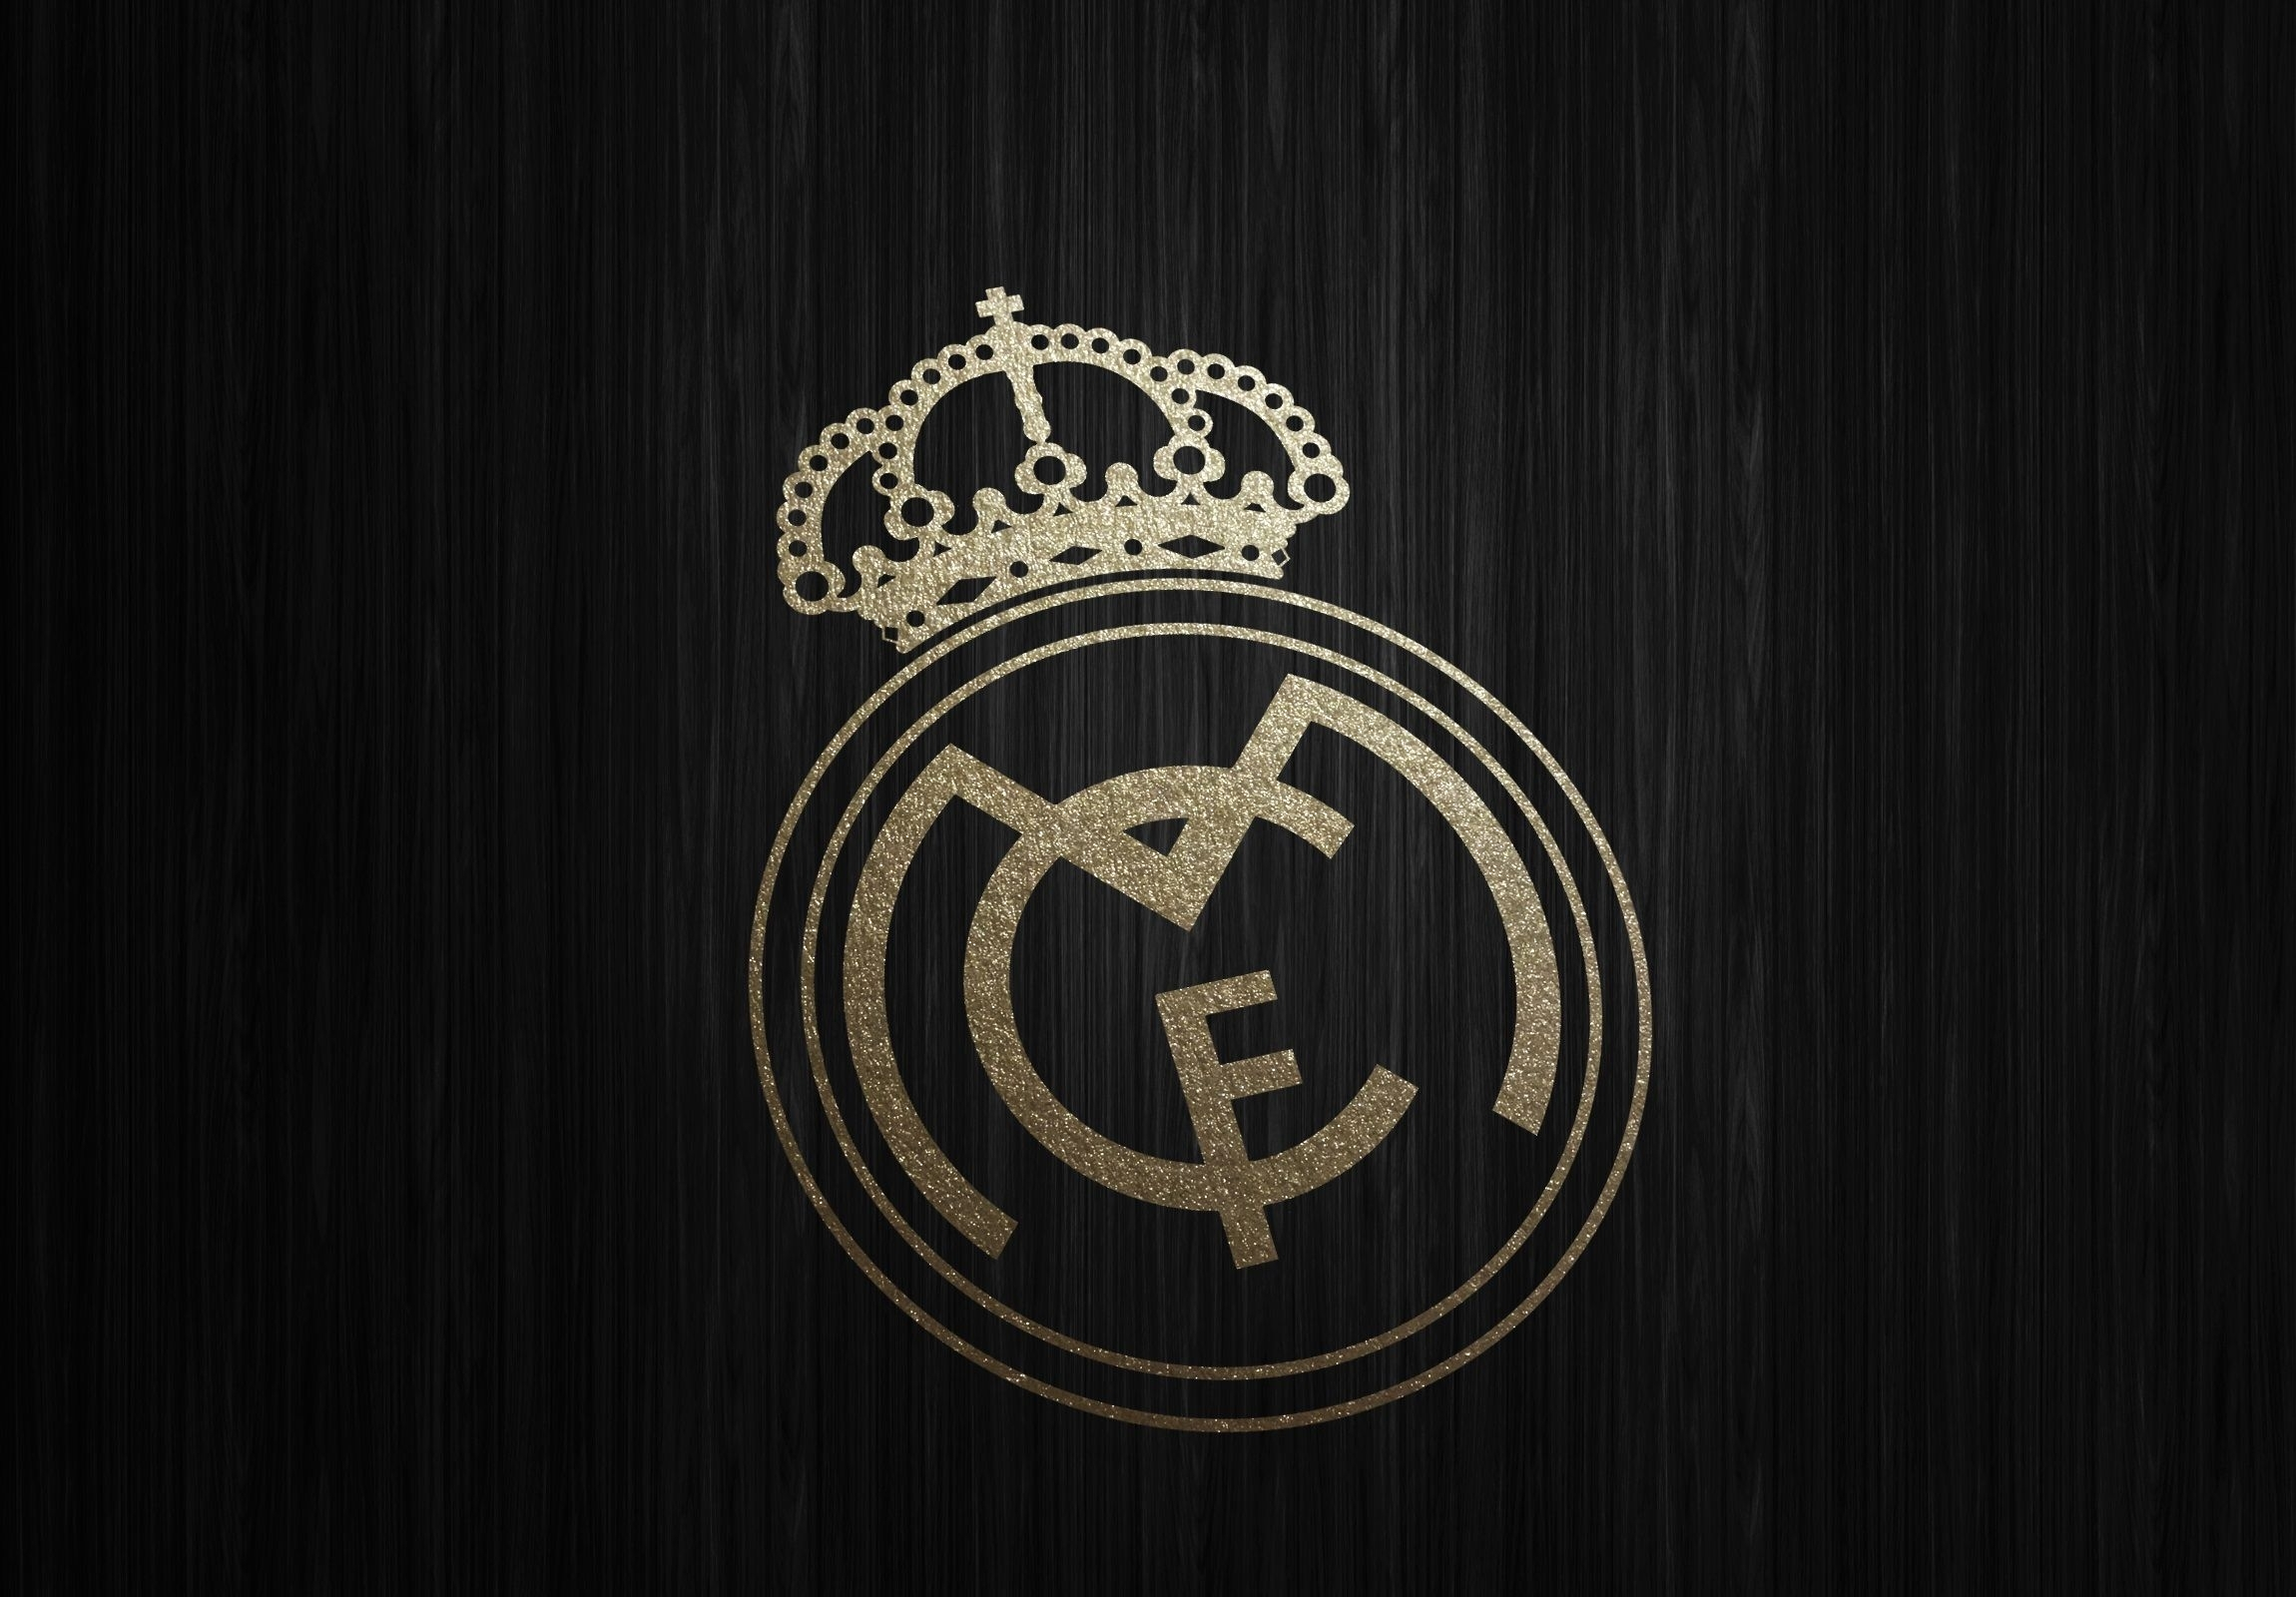 real club de fútbol real madrid wallpaper - 2018 wallpapers hd